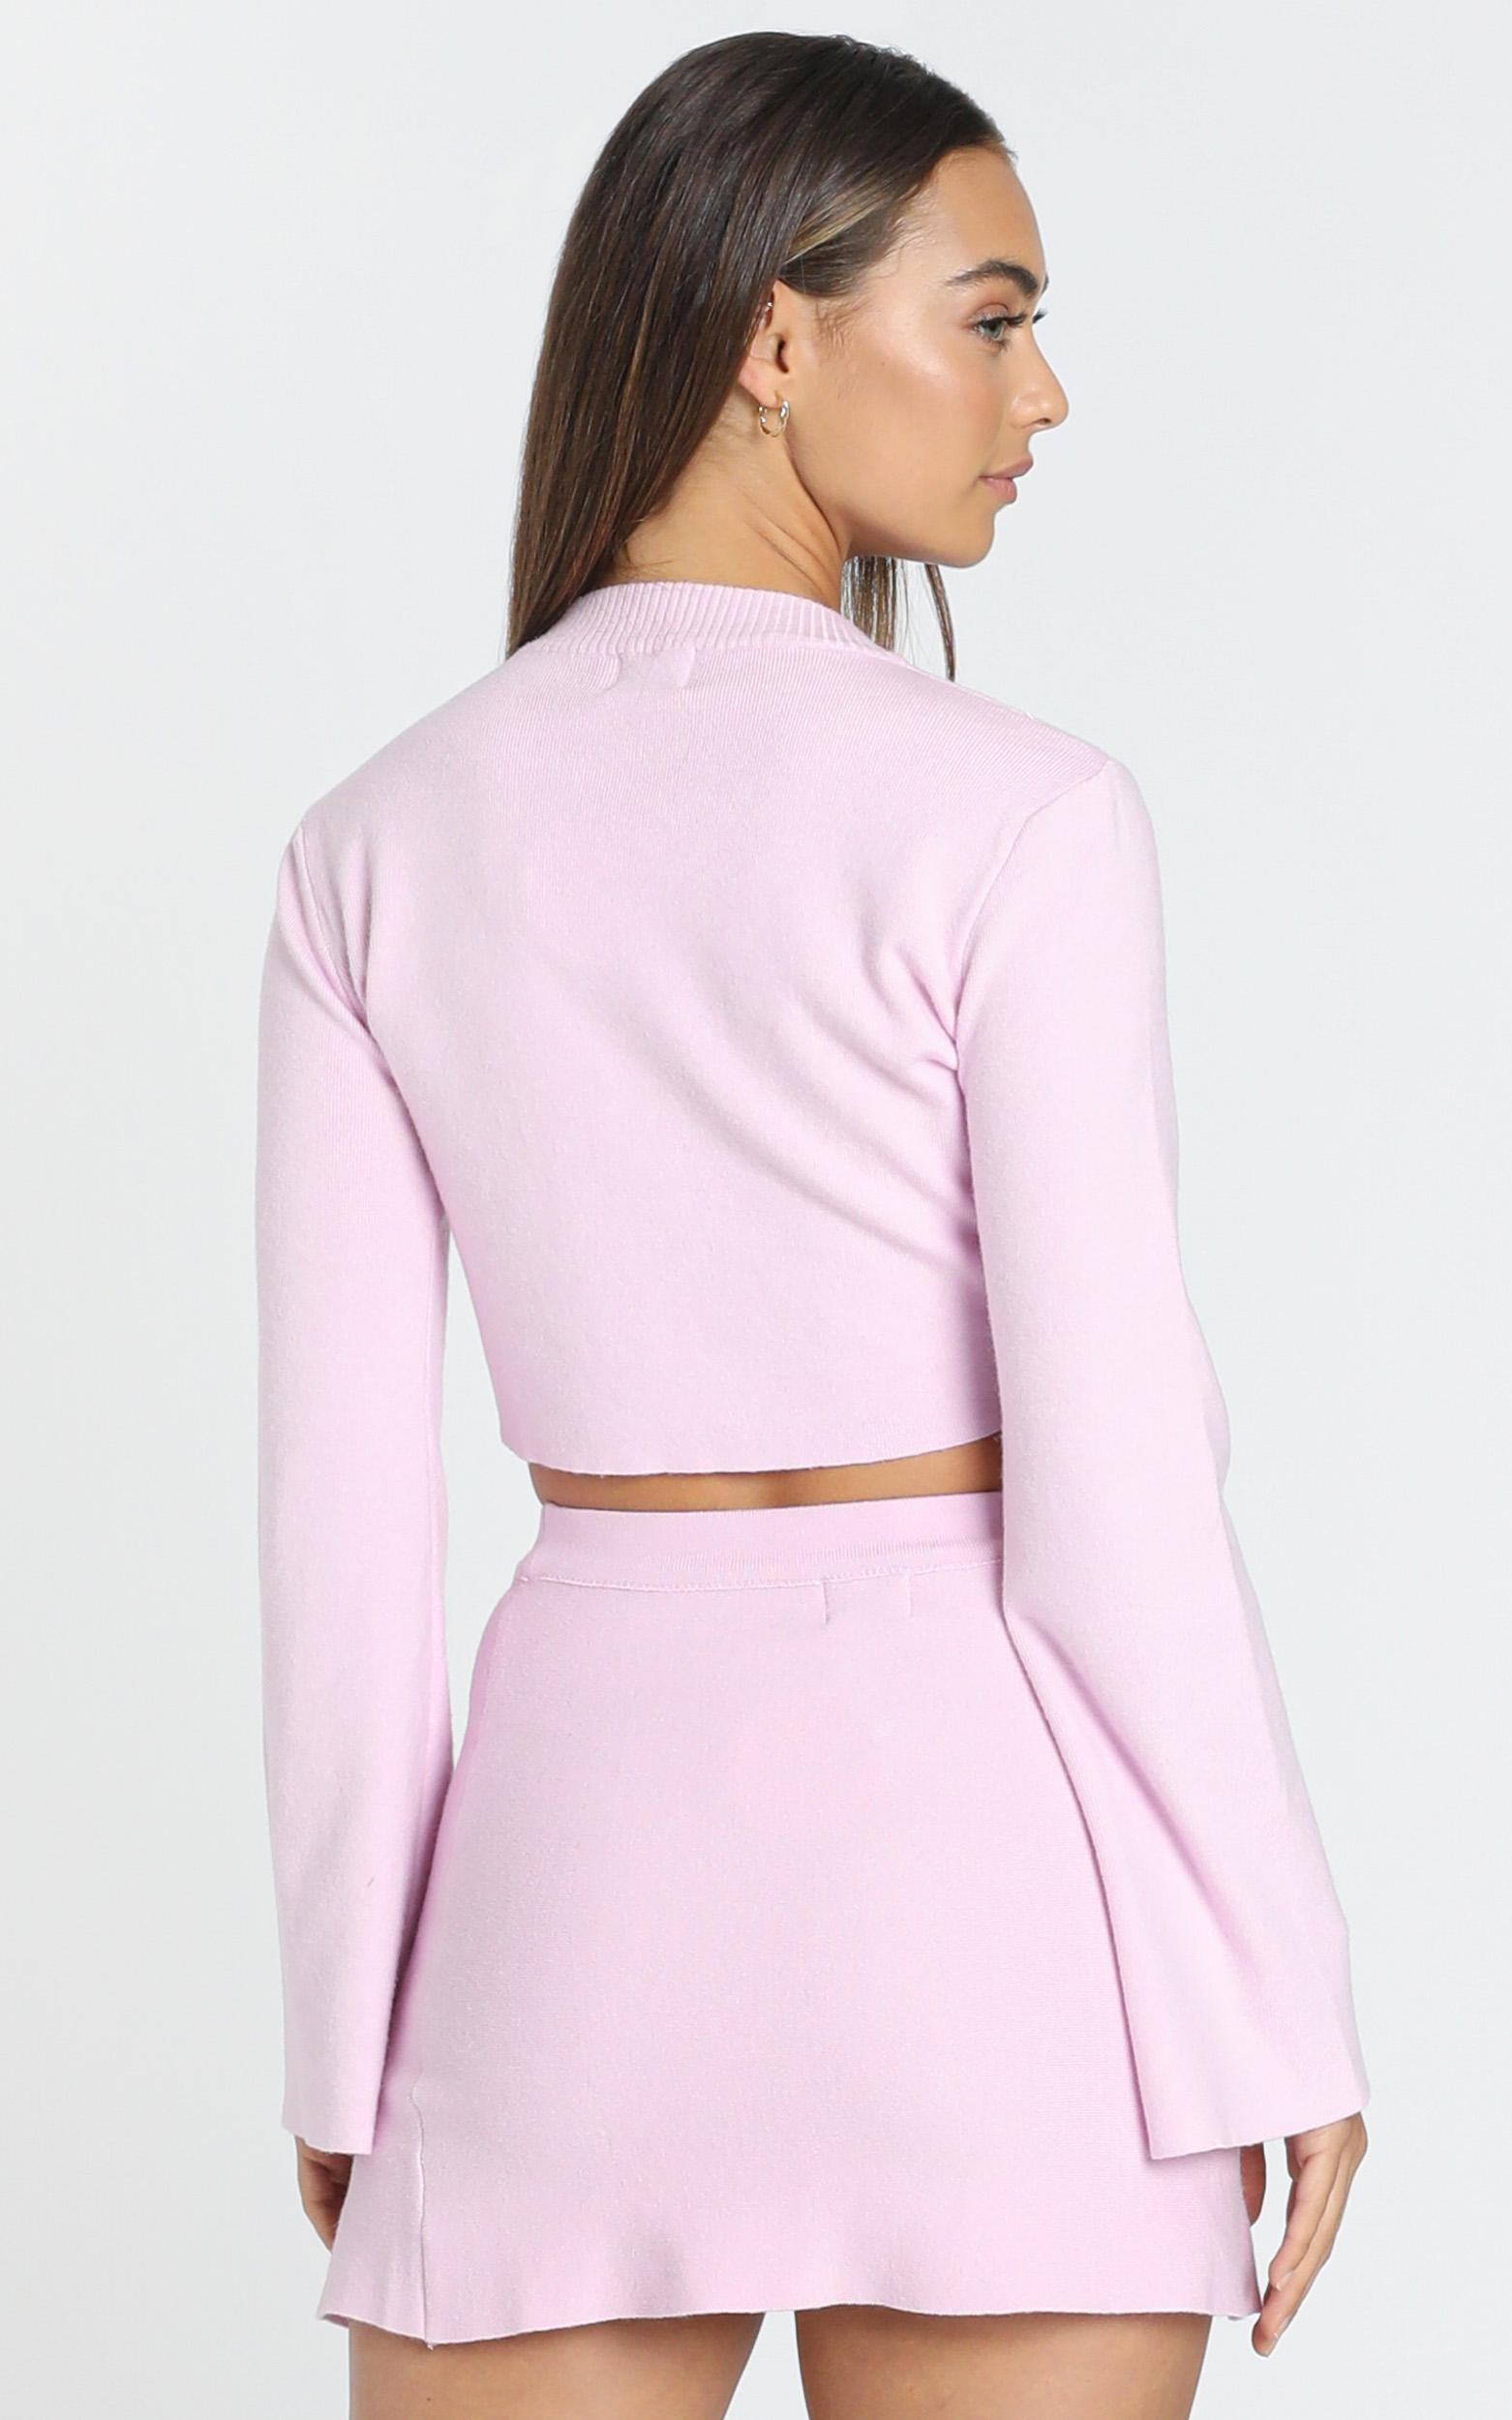 Kiley Knit Skirt in Pink - 6 (XS), Pink, hi-res image number null